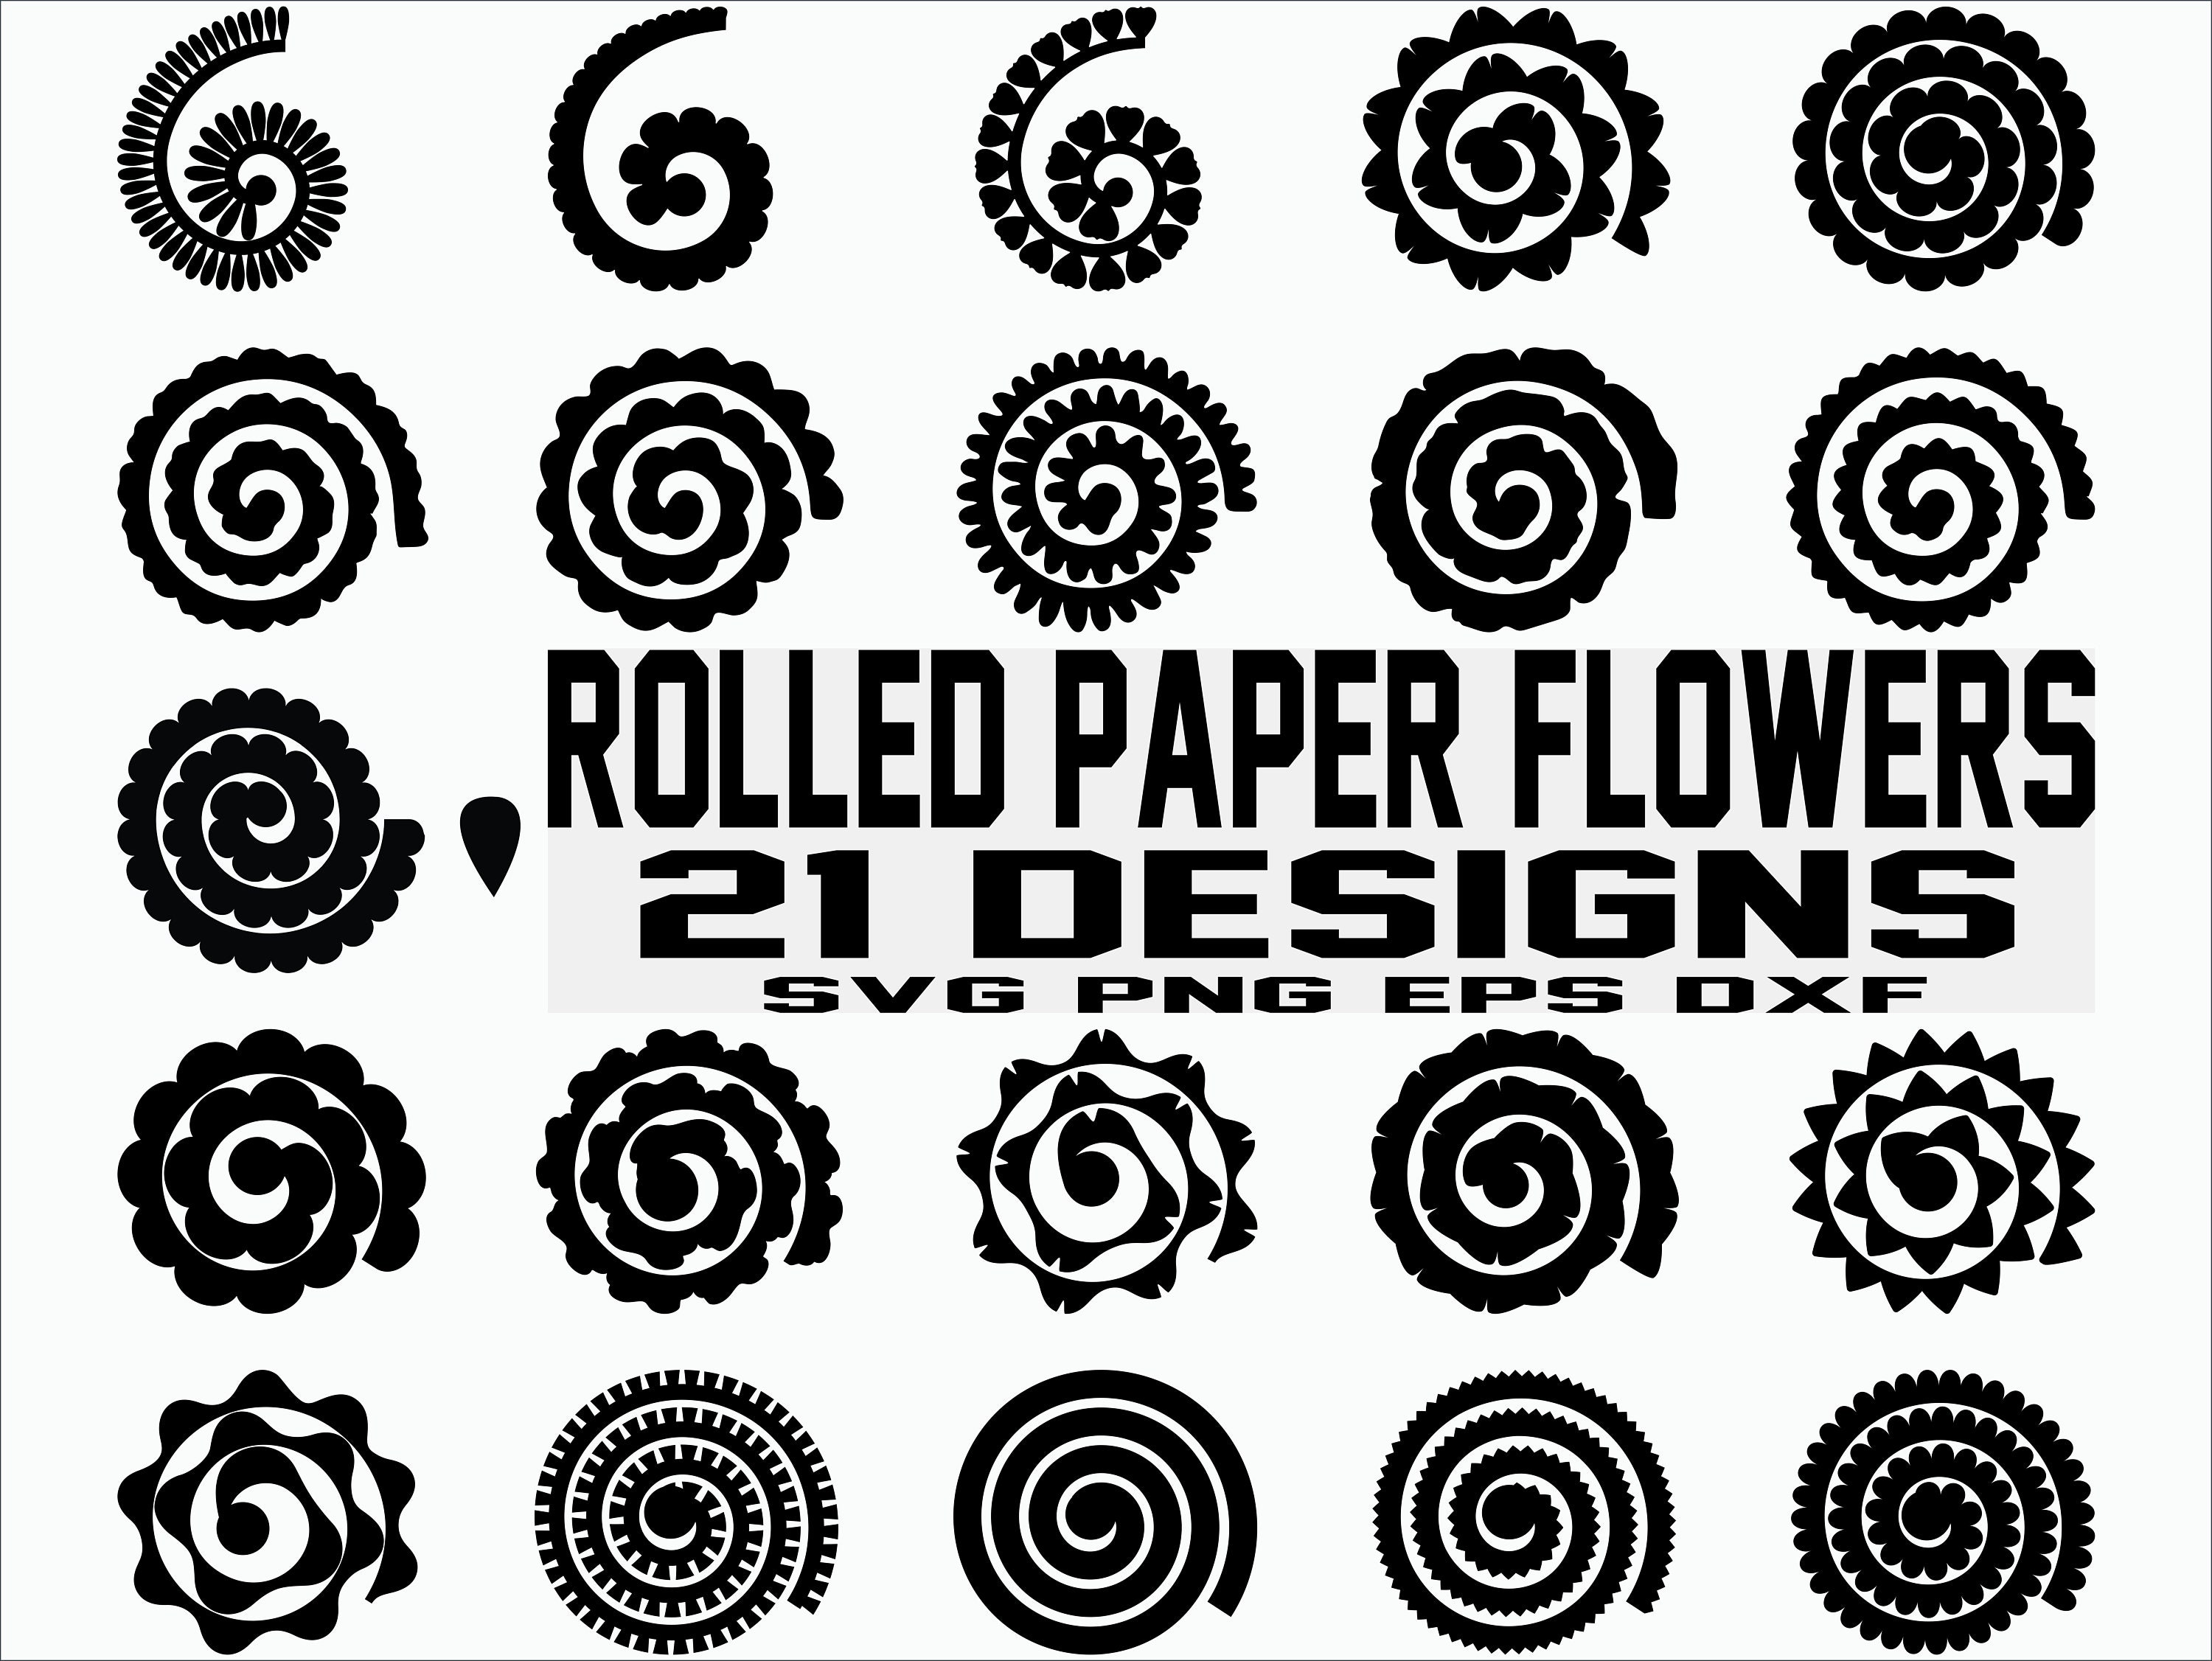 rolled paper flowers svg    flowers template    origami